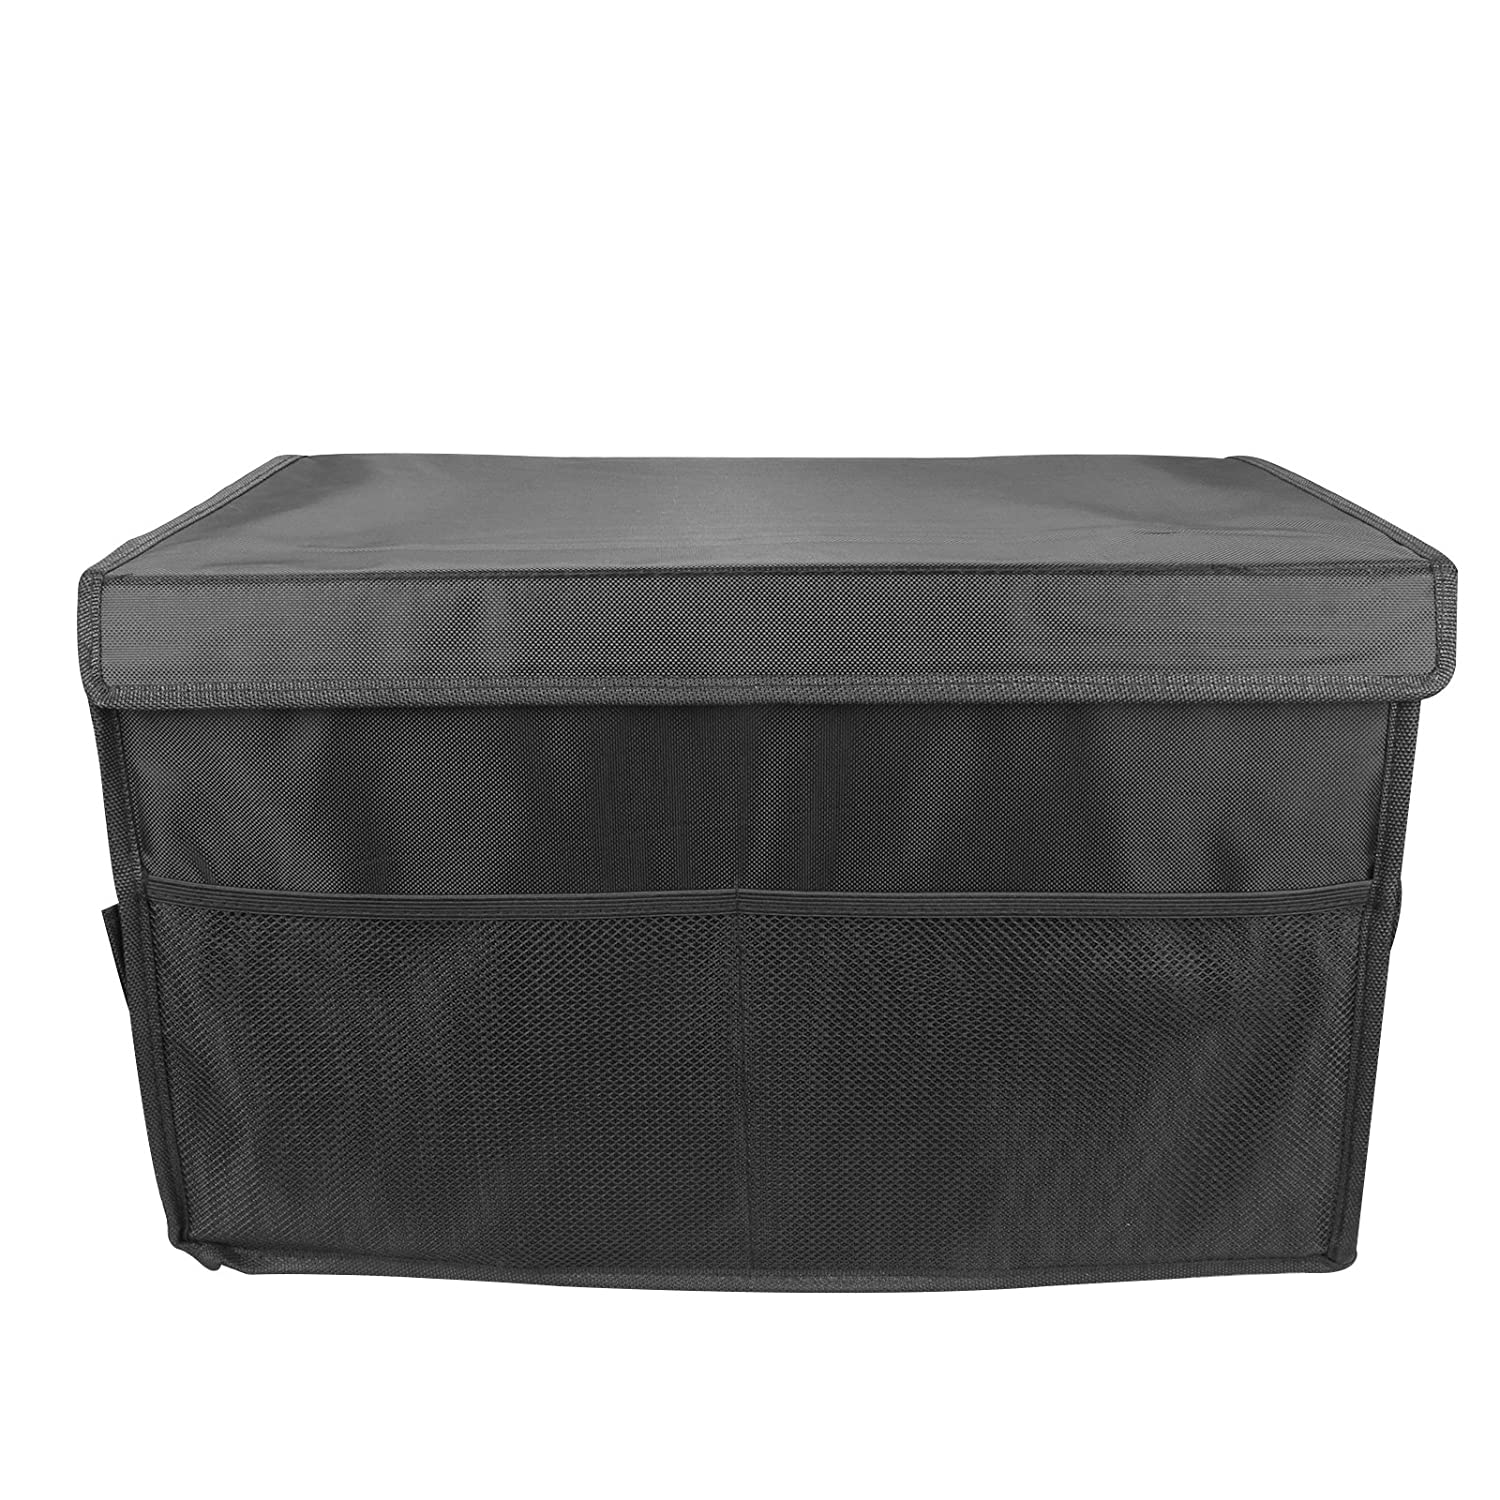 Black-Style 4 Mrcartool Car Trunk Organizers Auto Travel Foldable Container Waterproof Travel Storage Box Bin 3 Compartments 2 Pockets Fabric Storage Basket Cooler /& Warmer Set